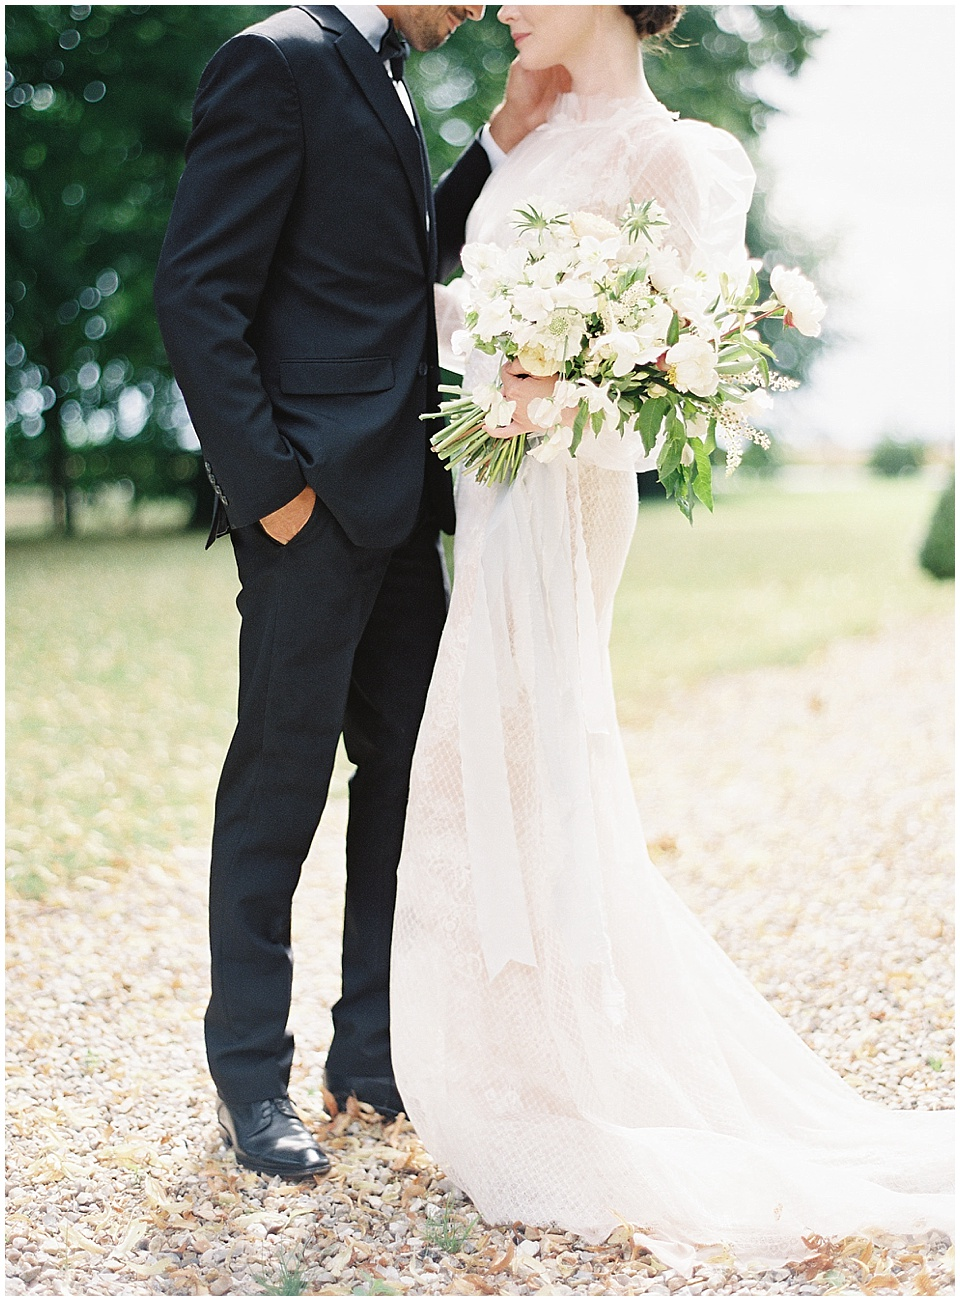 Bride and groom portraits | Joy Proctor Design | Yolan Cris wedding gown | Bows and Arrows florals | French Wedding Inspiration | France Wedding | Destination Film Photographer | Paris Wedding | Fine Art Film Photographer |  Chateau De Carsix | Whiskers and Willow Photography